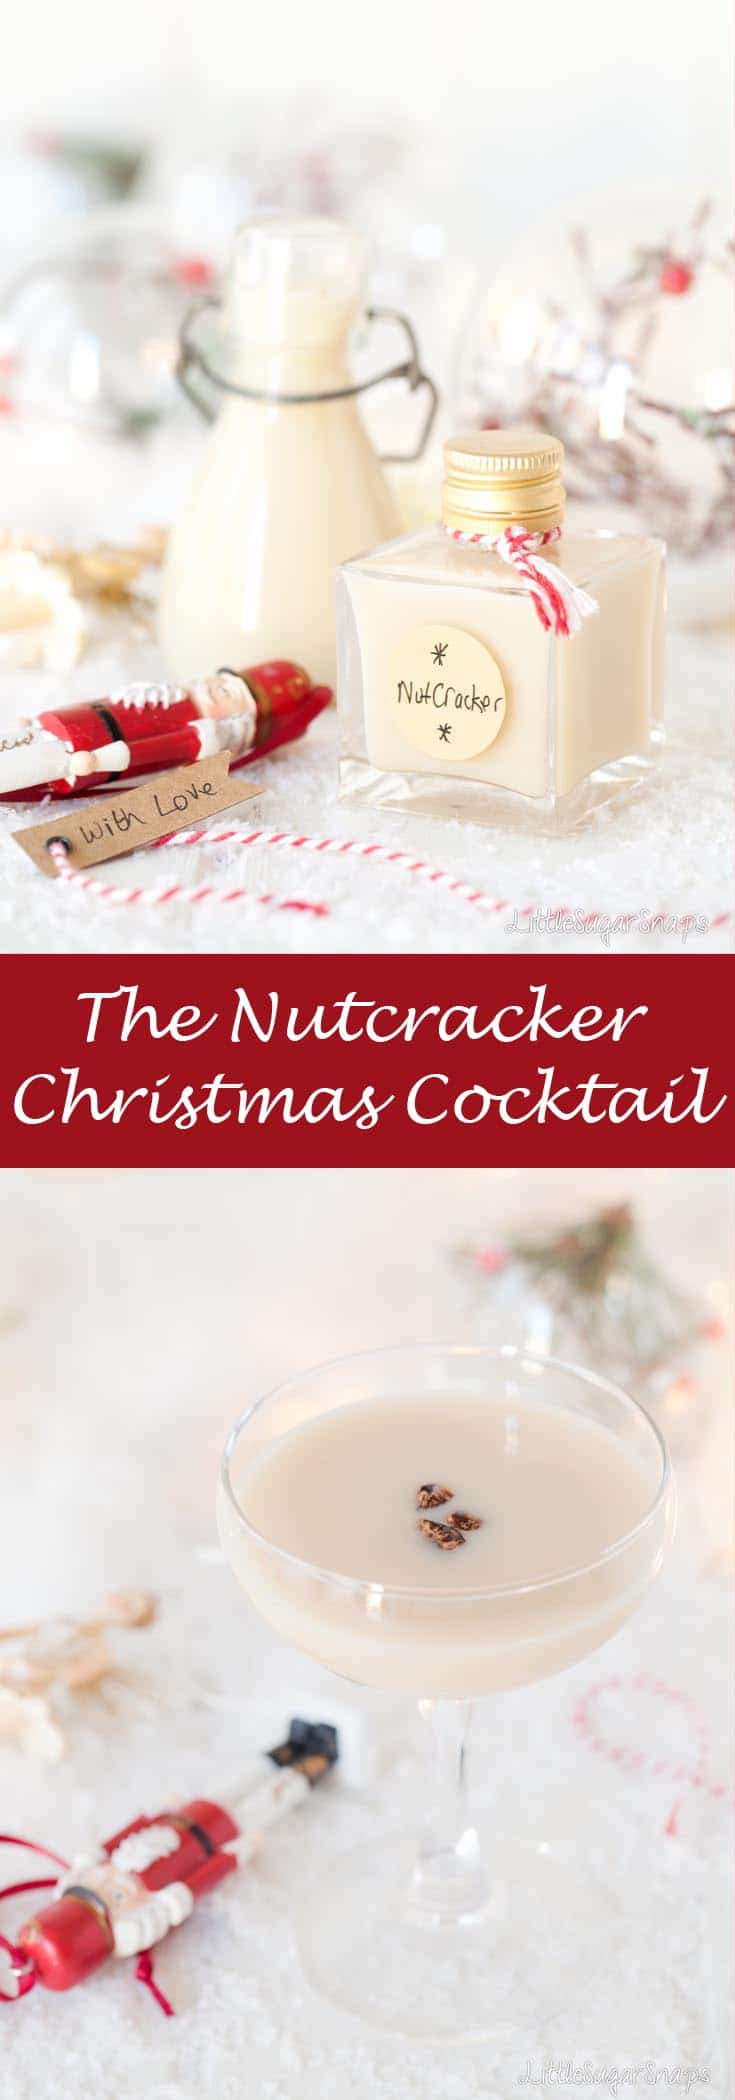 The Nutcracker Cocktail #christmascocktail #nutcracker #amaretto #frangelico #nutcrackercocktail